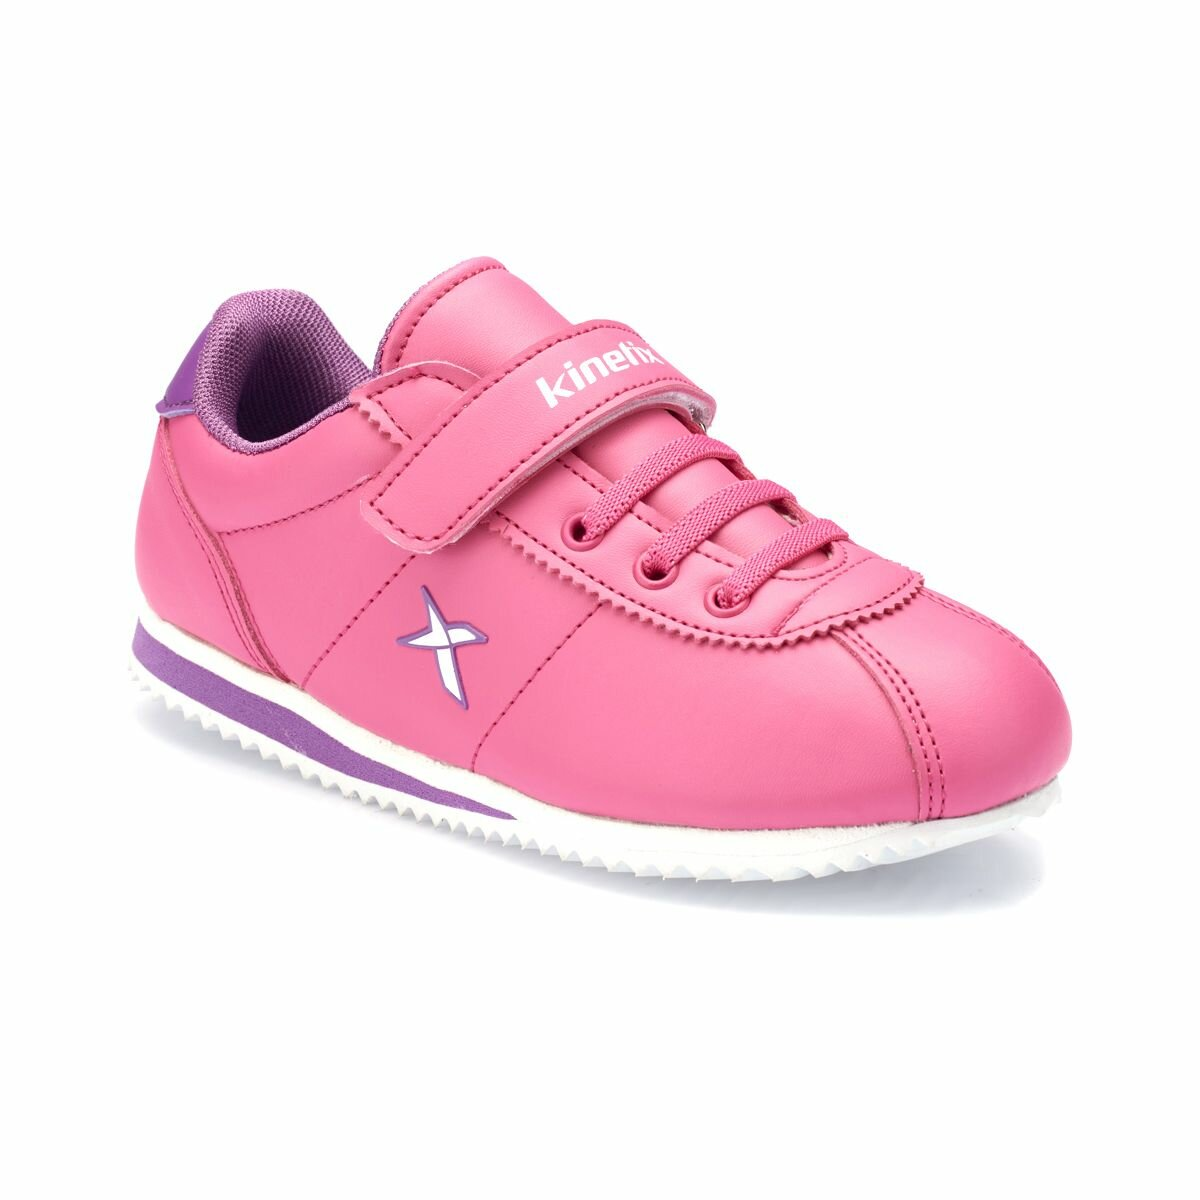 FLO KINTO Fuchsia Female Child Sneaker Shoes KINETIX